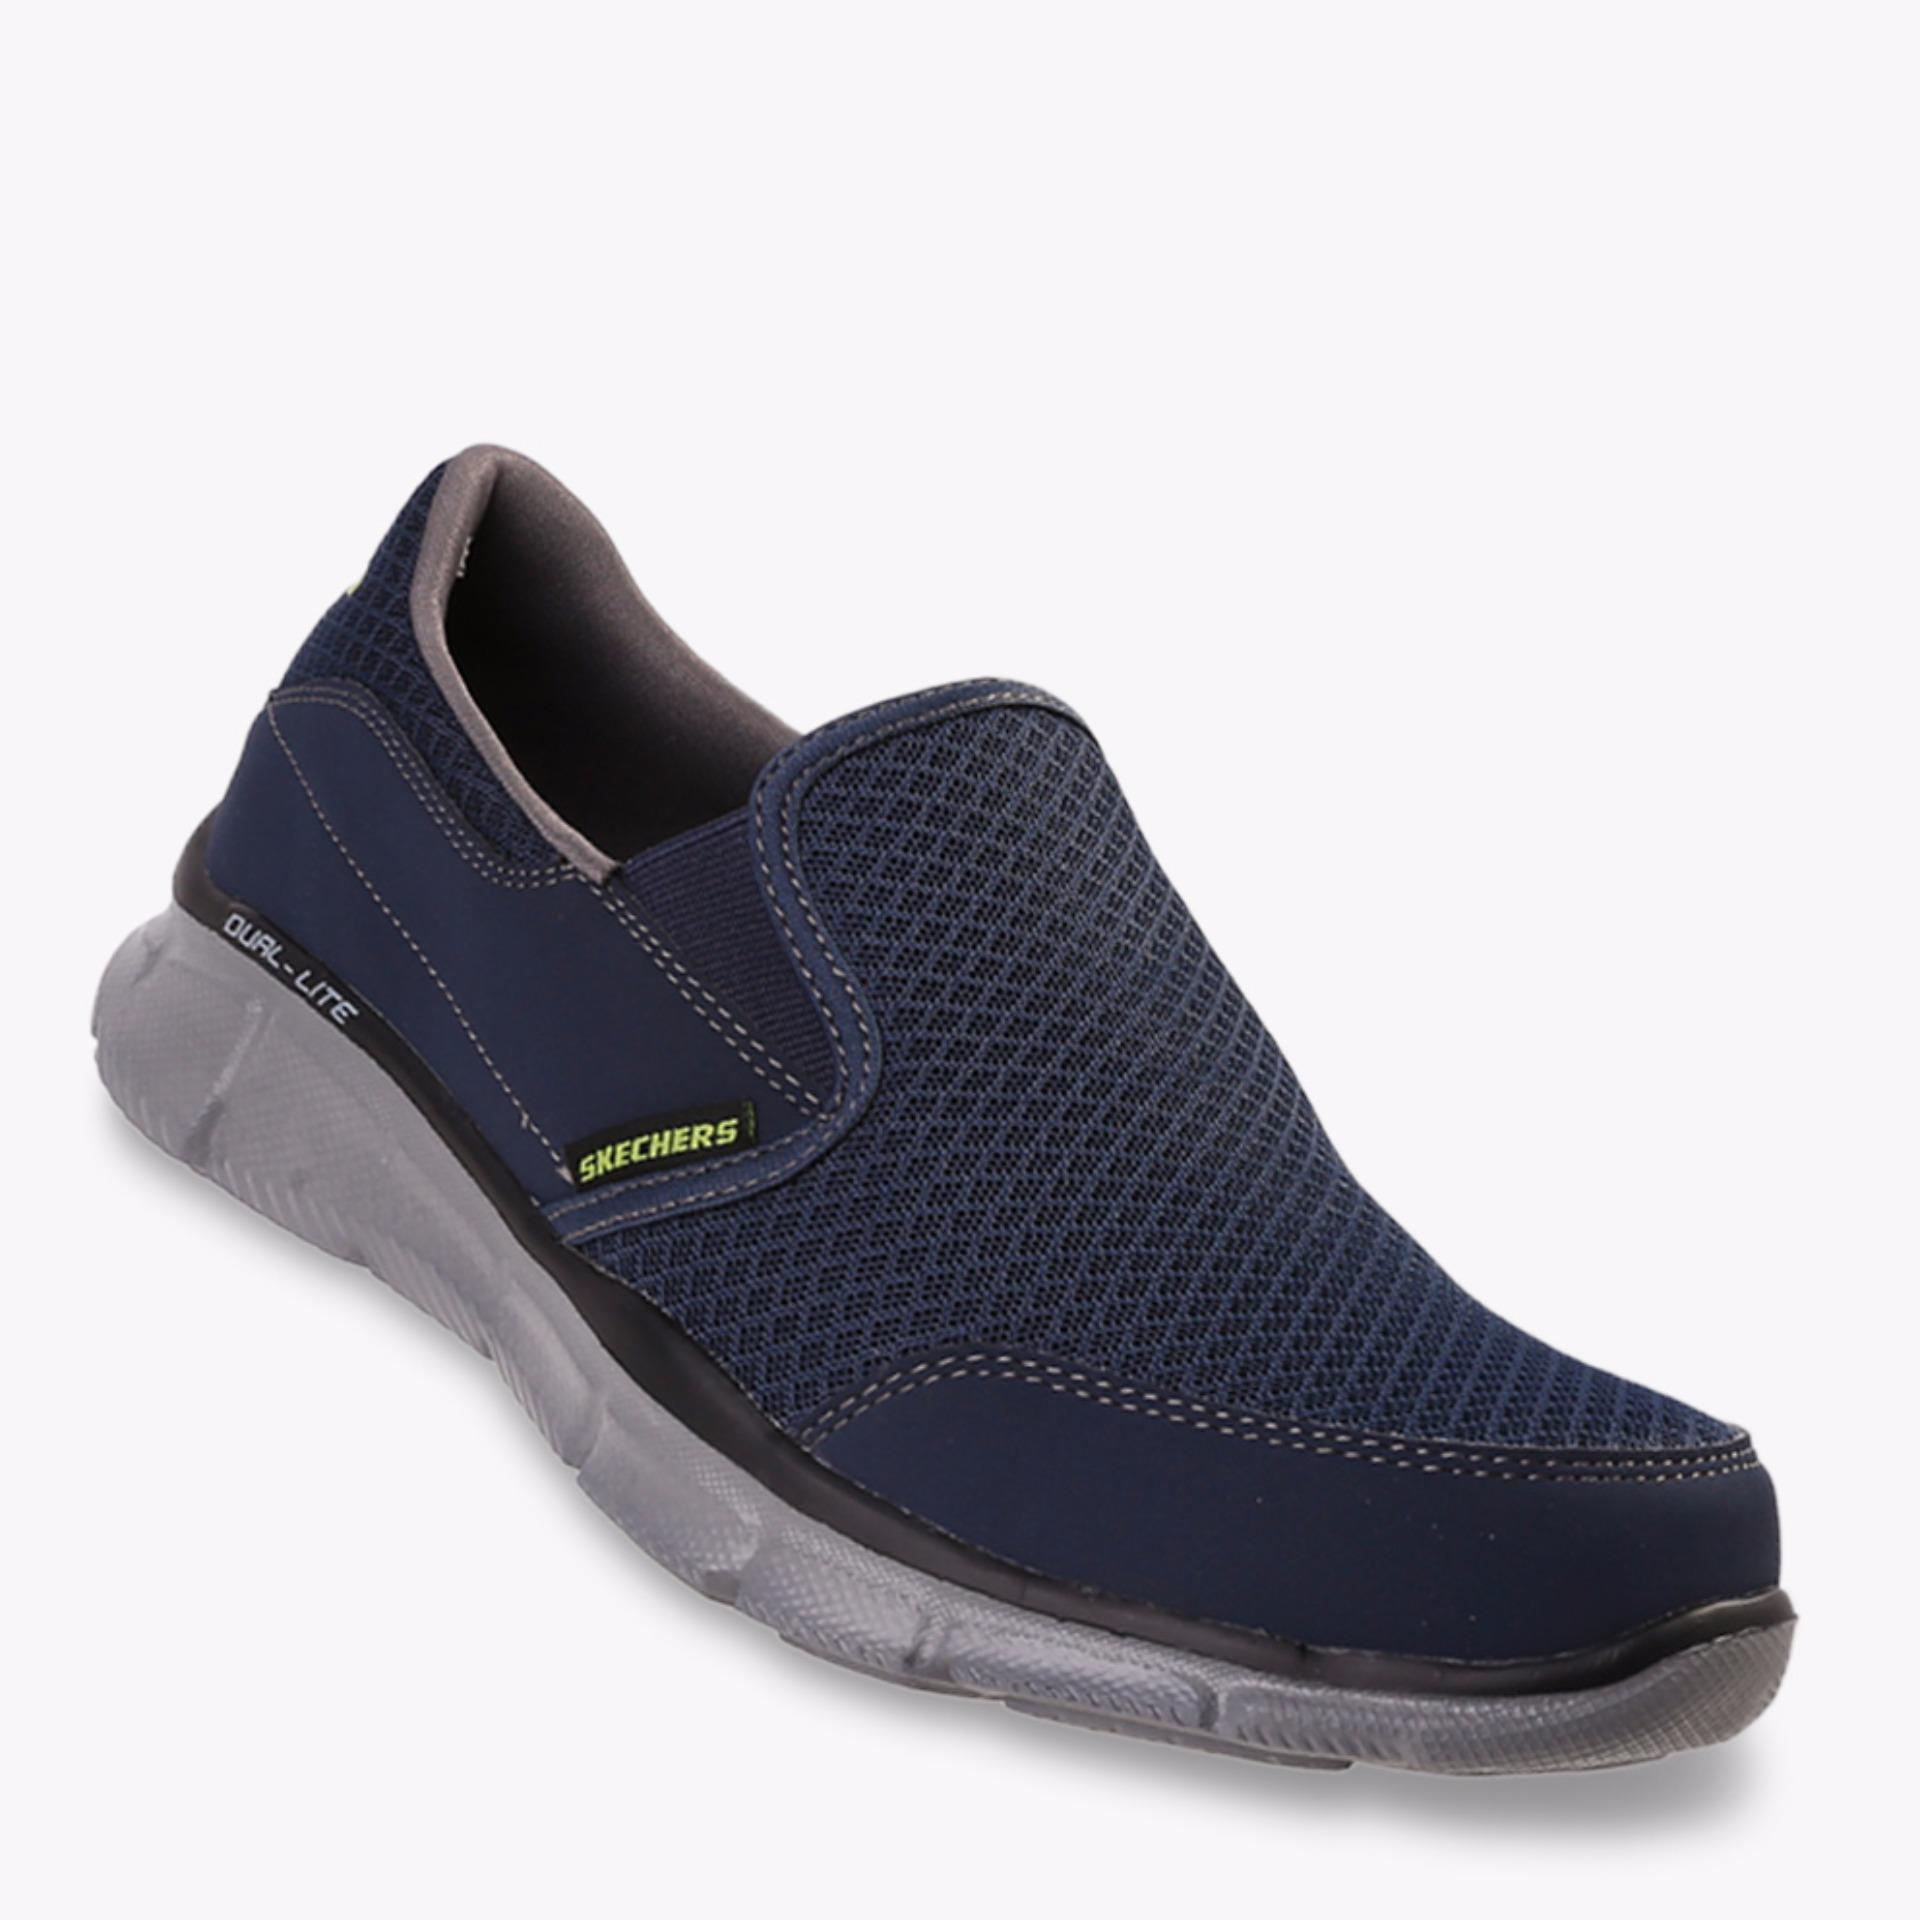 Promo Skechers Equalizer Persistent Men S Sneakers Shoes Navy Di Indonesia